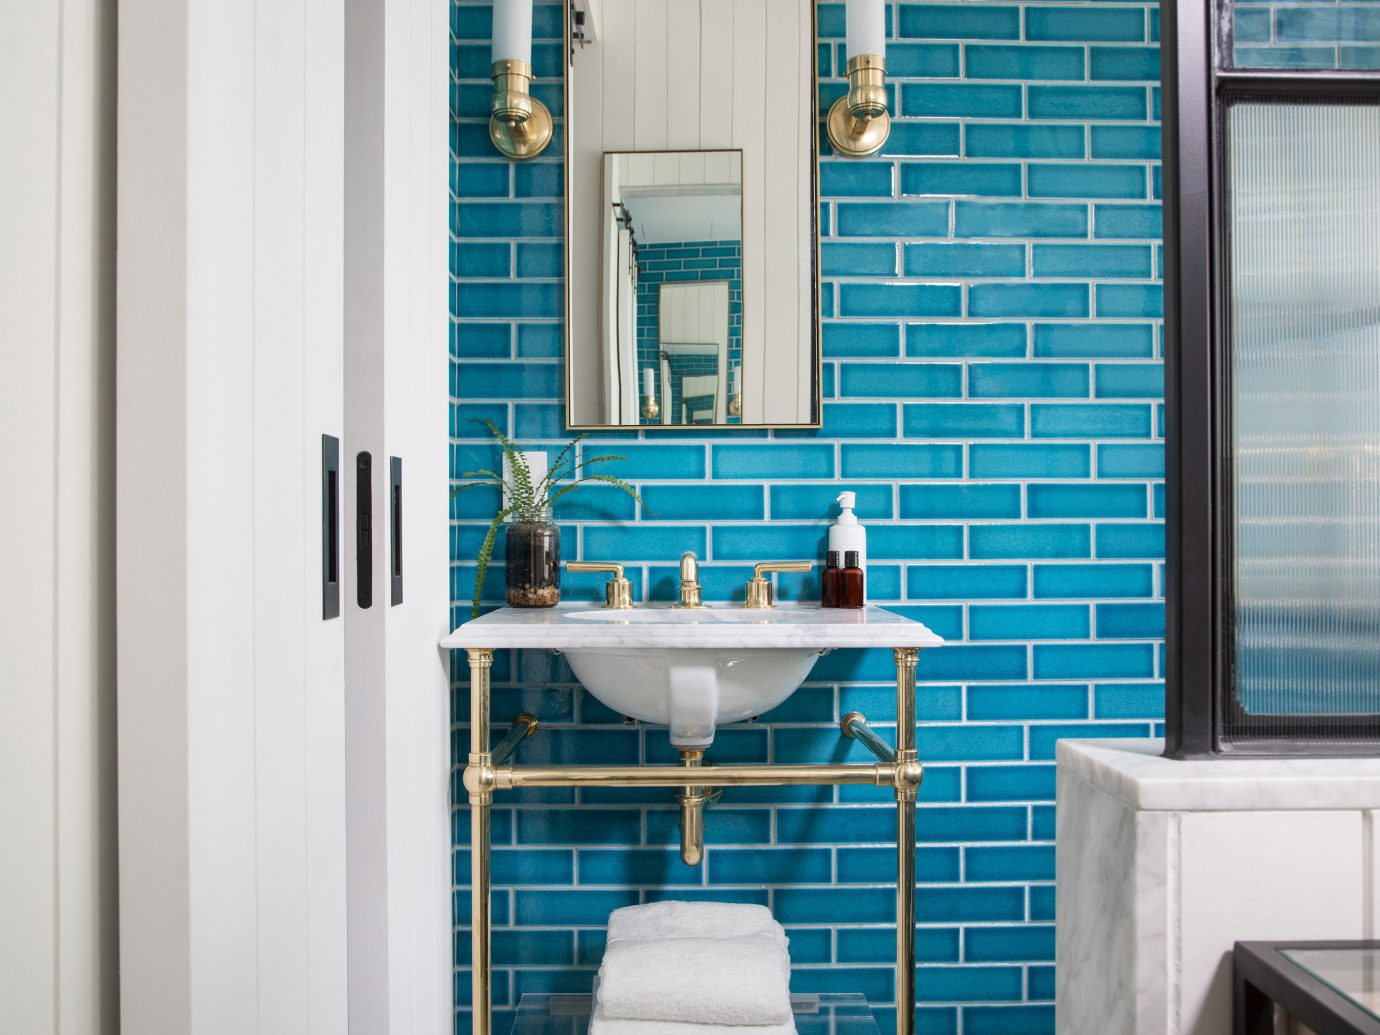 Trip Ideas wall indoor blue room bathroom home interior design window covering window Design apartment tiled